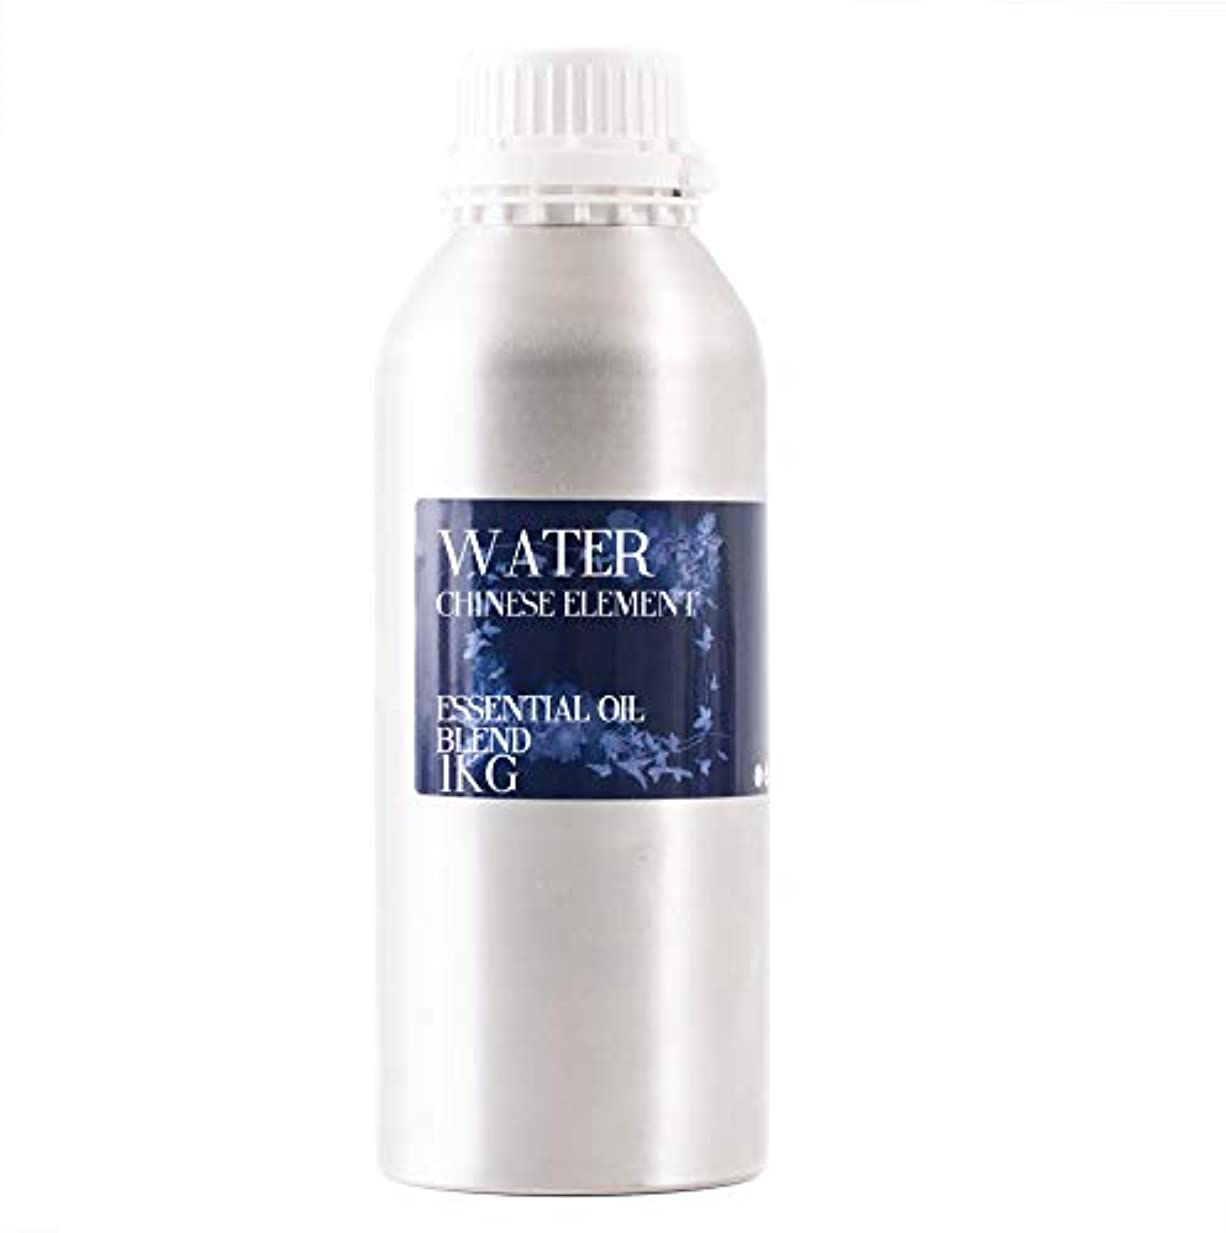 経由で長いです対抗Mystix London | Chinese Water Element Essential Oil Blend - 1Kg